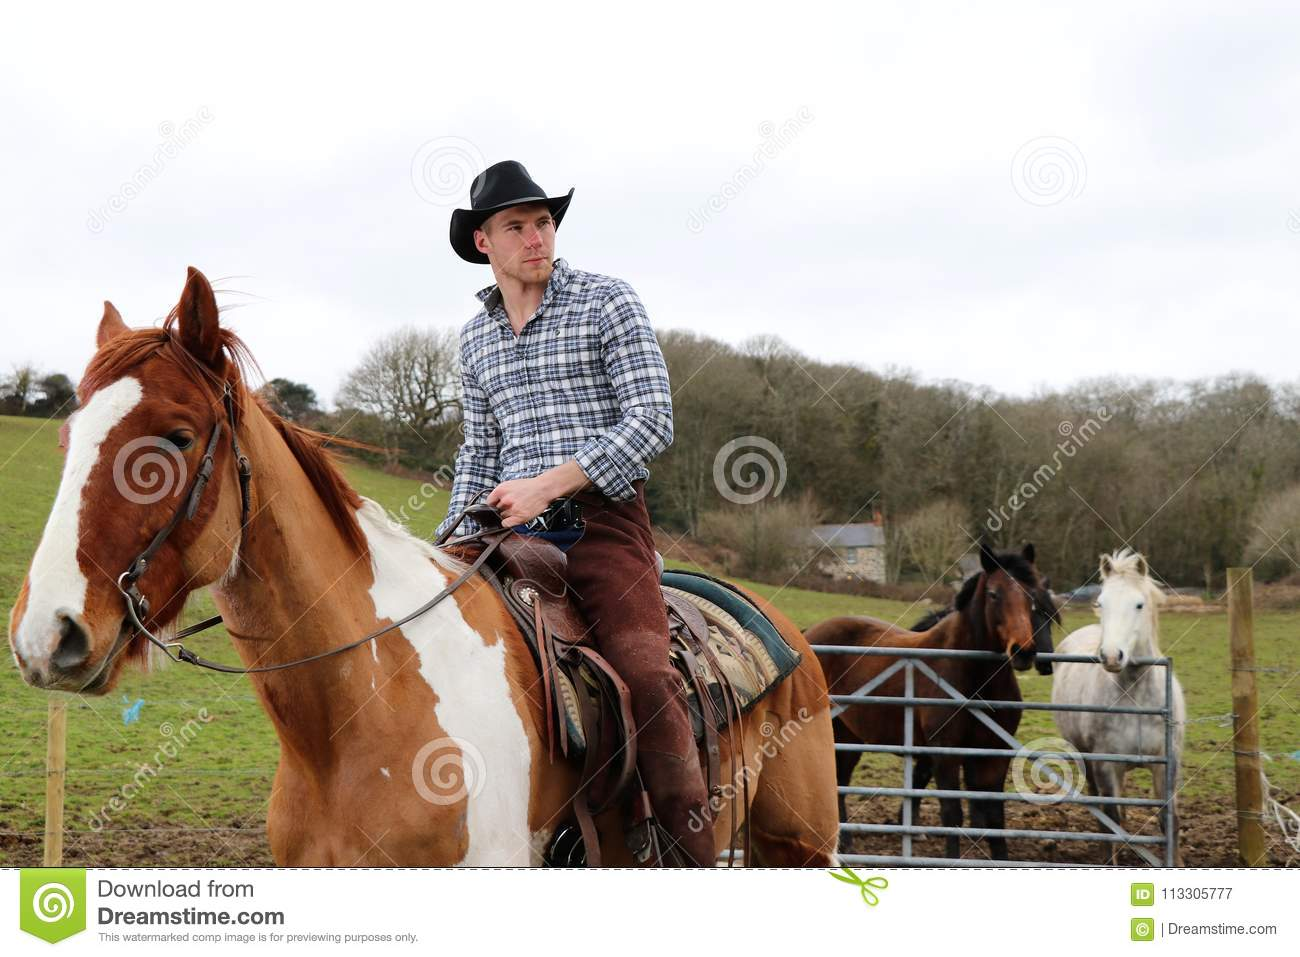 Handsome Cowboy On Horse With Horses In The Background Stock Image